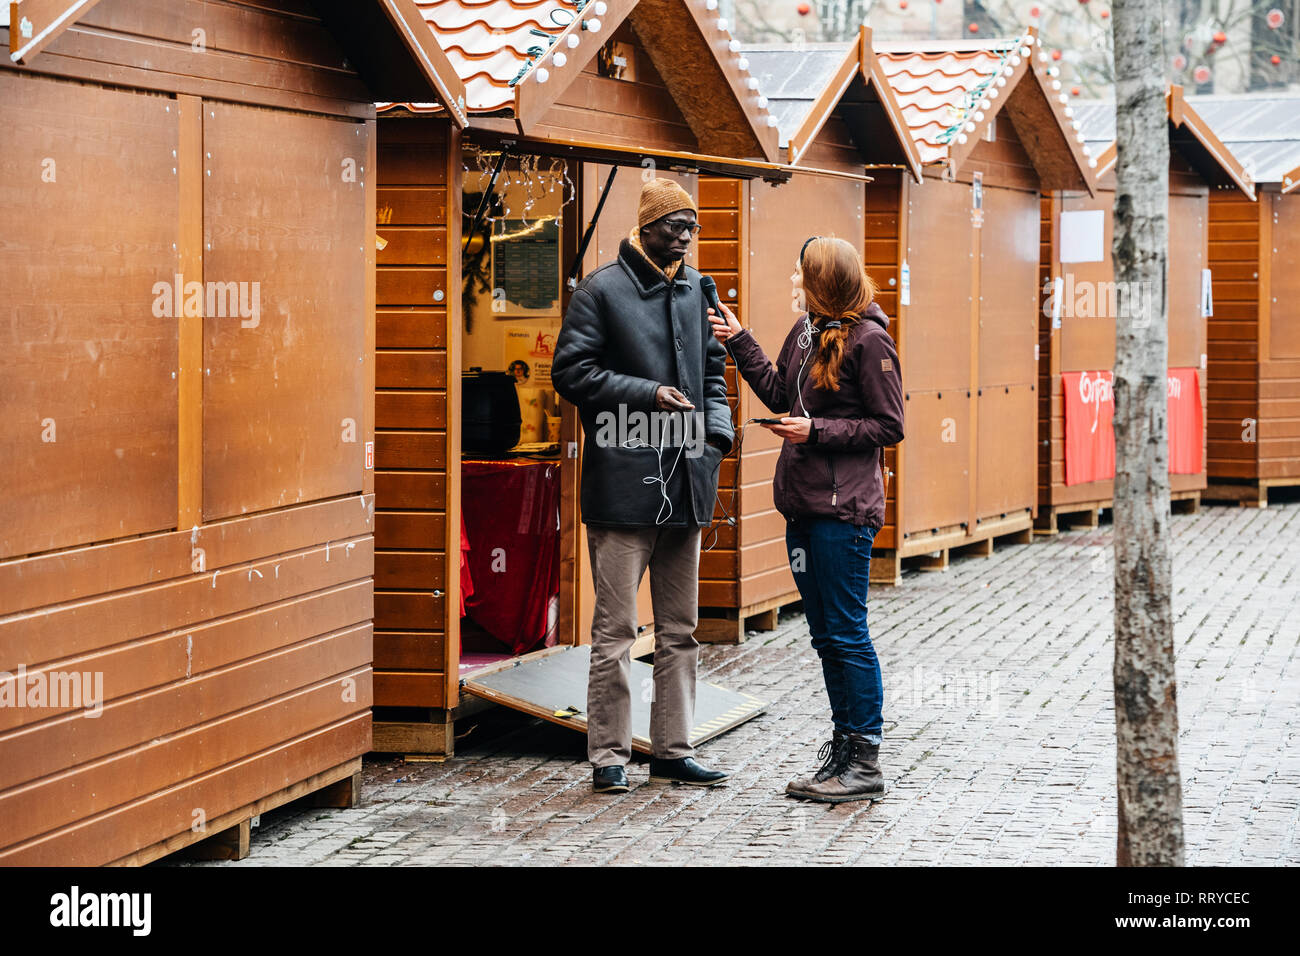 STRASBOURG, FRANCE - DEC 11, 2018: Journalist taking interview to Christmas Market seller after terrorist attack in Place Kleber - Stock Image